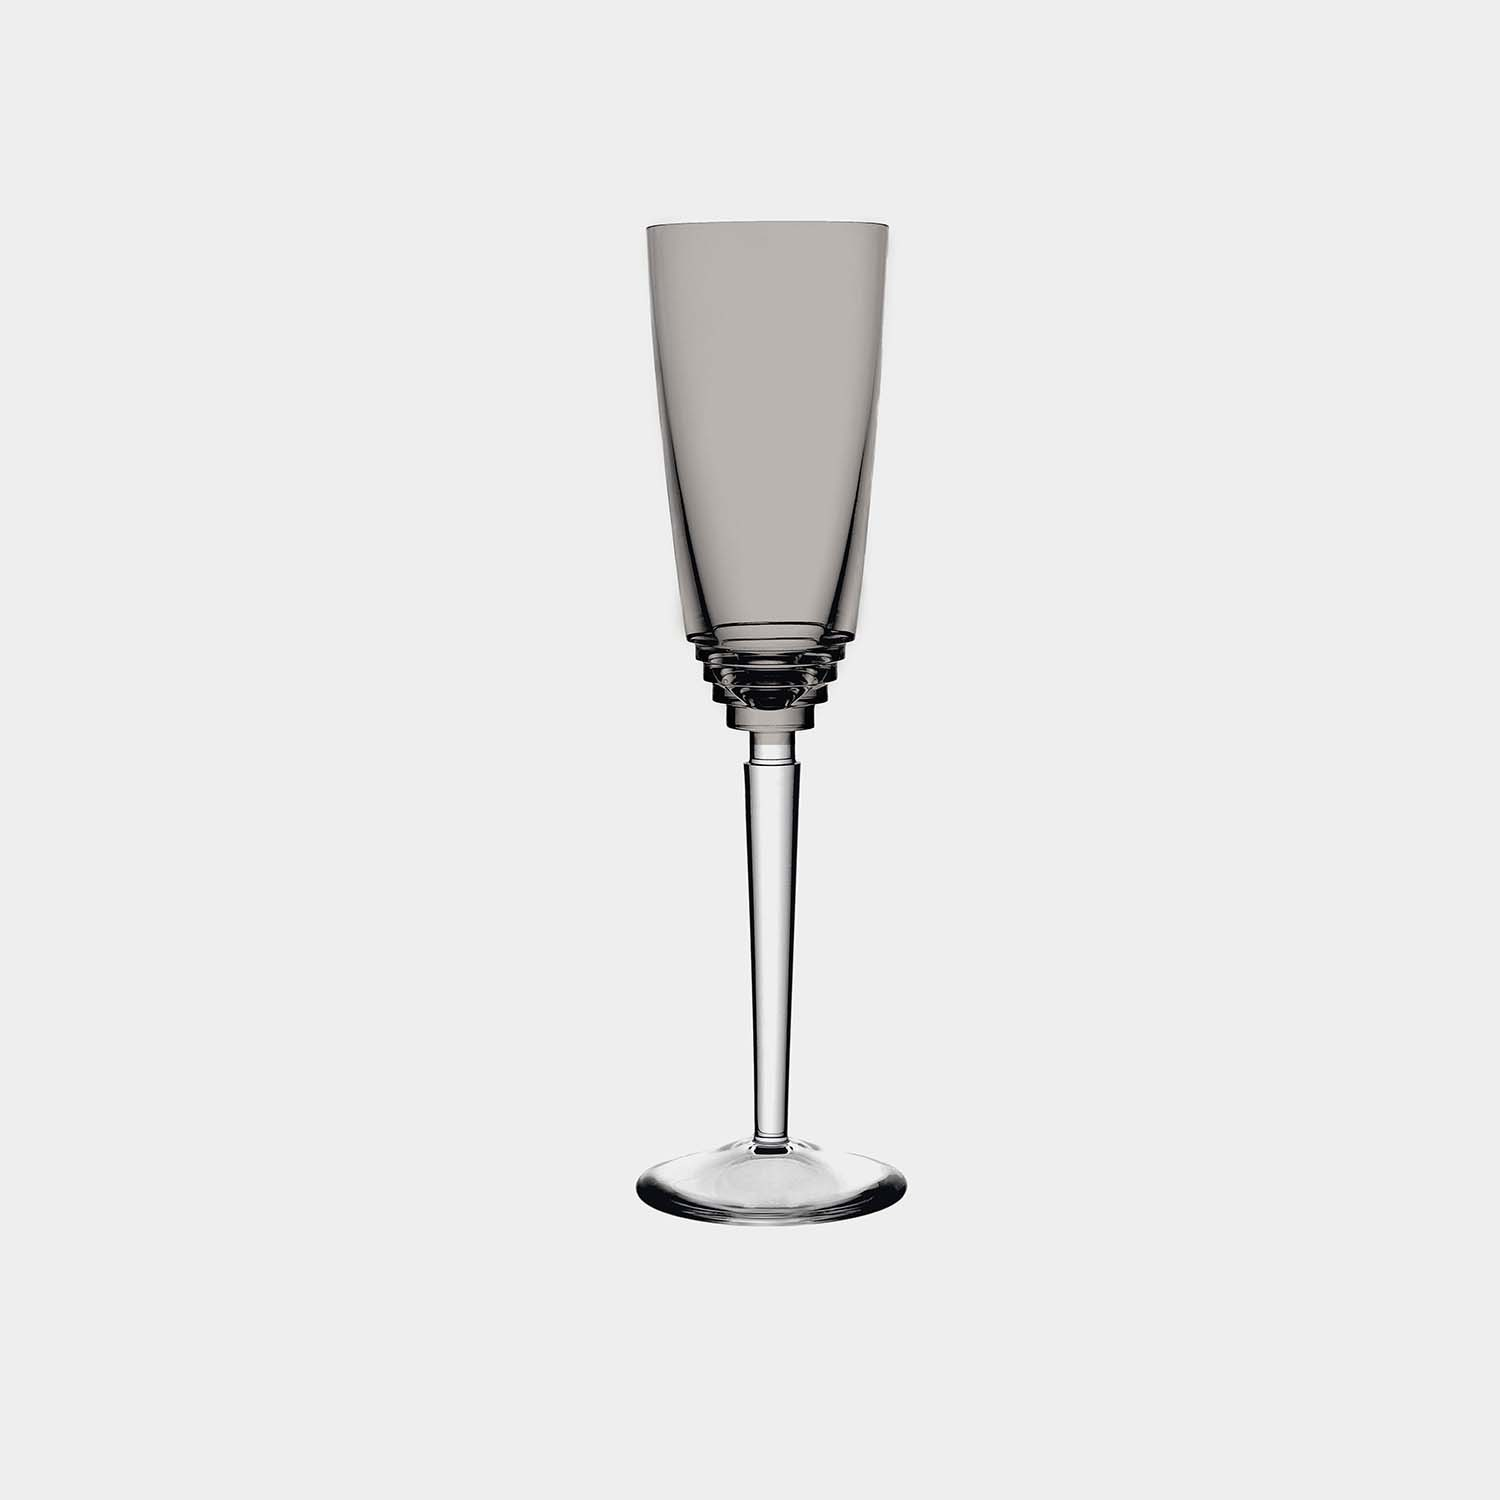 Oxymore Champagne Flute, Flannel Gray